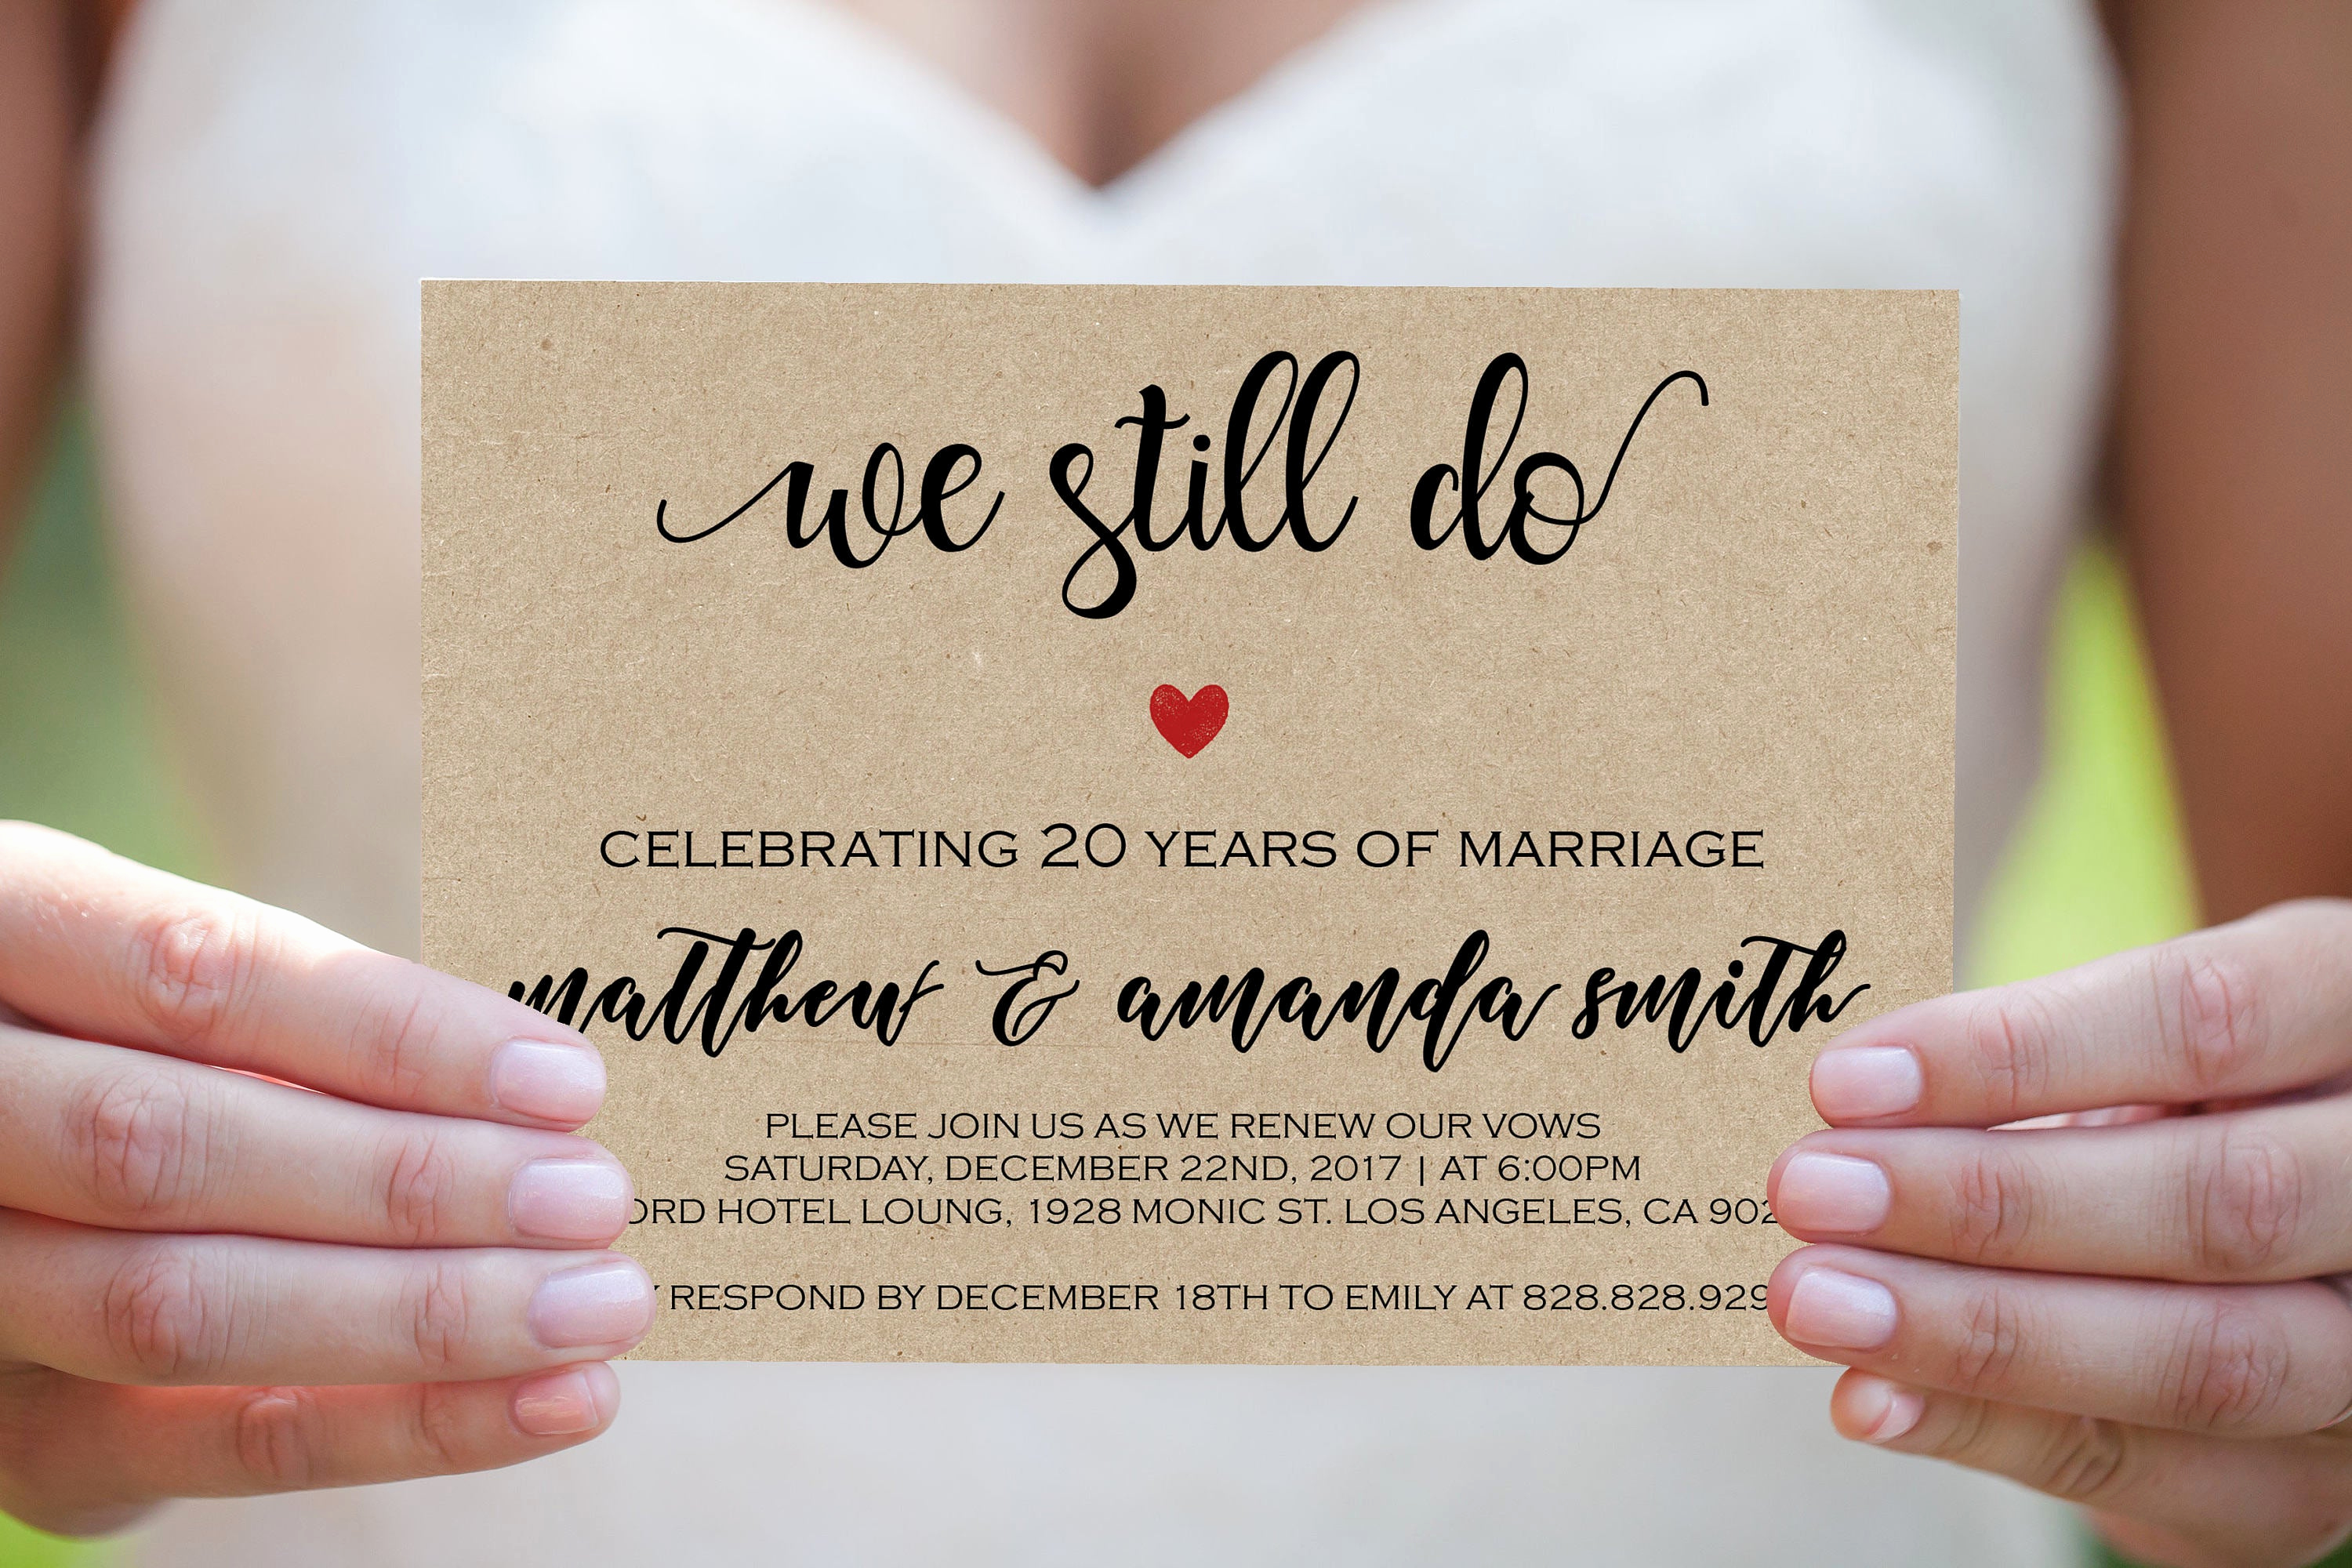 Renew Vows Invitation Wording Awesome We Still Do Invitations Vow Renewal Invitation Template